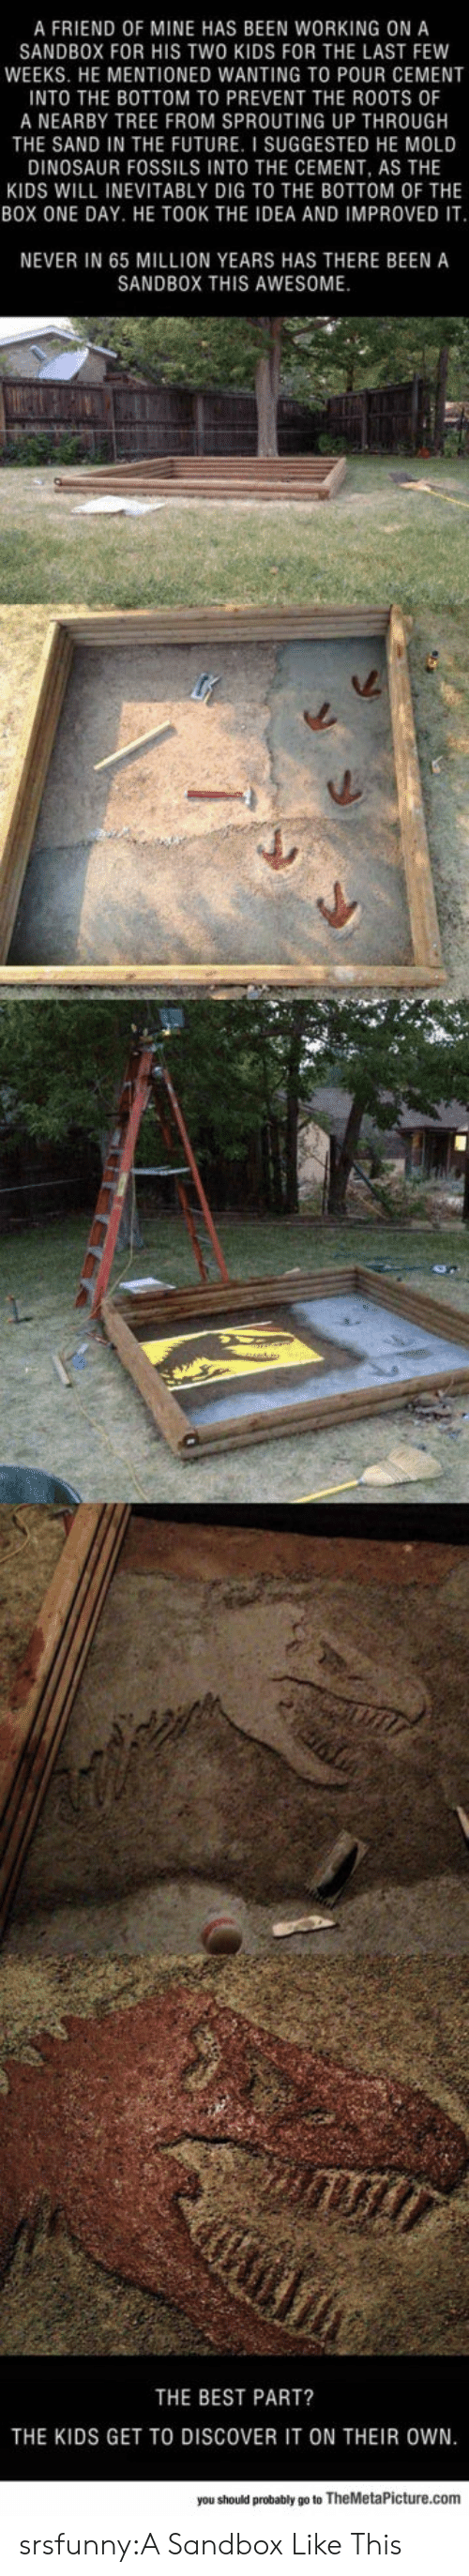 inevitably: A FRIEND OF MINE HAS BEEN WORKING ON A  SANDBOX FOR HIS TWO KIDS FOR THE LAST FEW  WEEKS. HE MENTIONED WANTING TO POUR CEMENT  INTO THE BOTTOM TO PREVENT THE ROOTS OF  A NEARBY TREE FROM SPROUTING UP THROUGH  THE SAND IN THE FUTURE. I SUGGESTED HE MOLD  DINOSAUR FOSSILS INTO THE CEMENT, AS THE  KIDS WILL INEVITABLY DIG TO THE BOTTOM OF THE  BOX ONE DAY. HE TOOK THE IDEA AND IMPROVED IT  NEVER IN 65 MILLION YEARS HAS THERE BEEN A  SANDBOX THIS AWESOME  THE BEST PART?  THE KIDS GET TO DISCOVER IT ON THEIR OWN  you should probably go to TheMetaPicture.com srsfunny:A Sandbox Like This